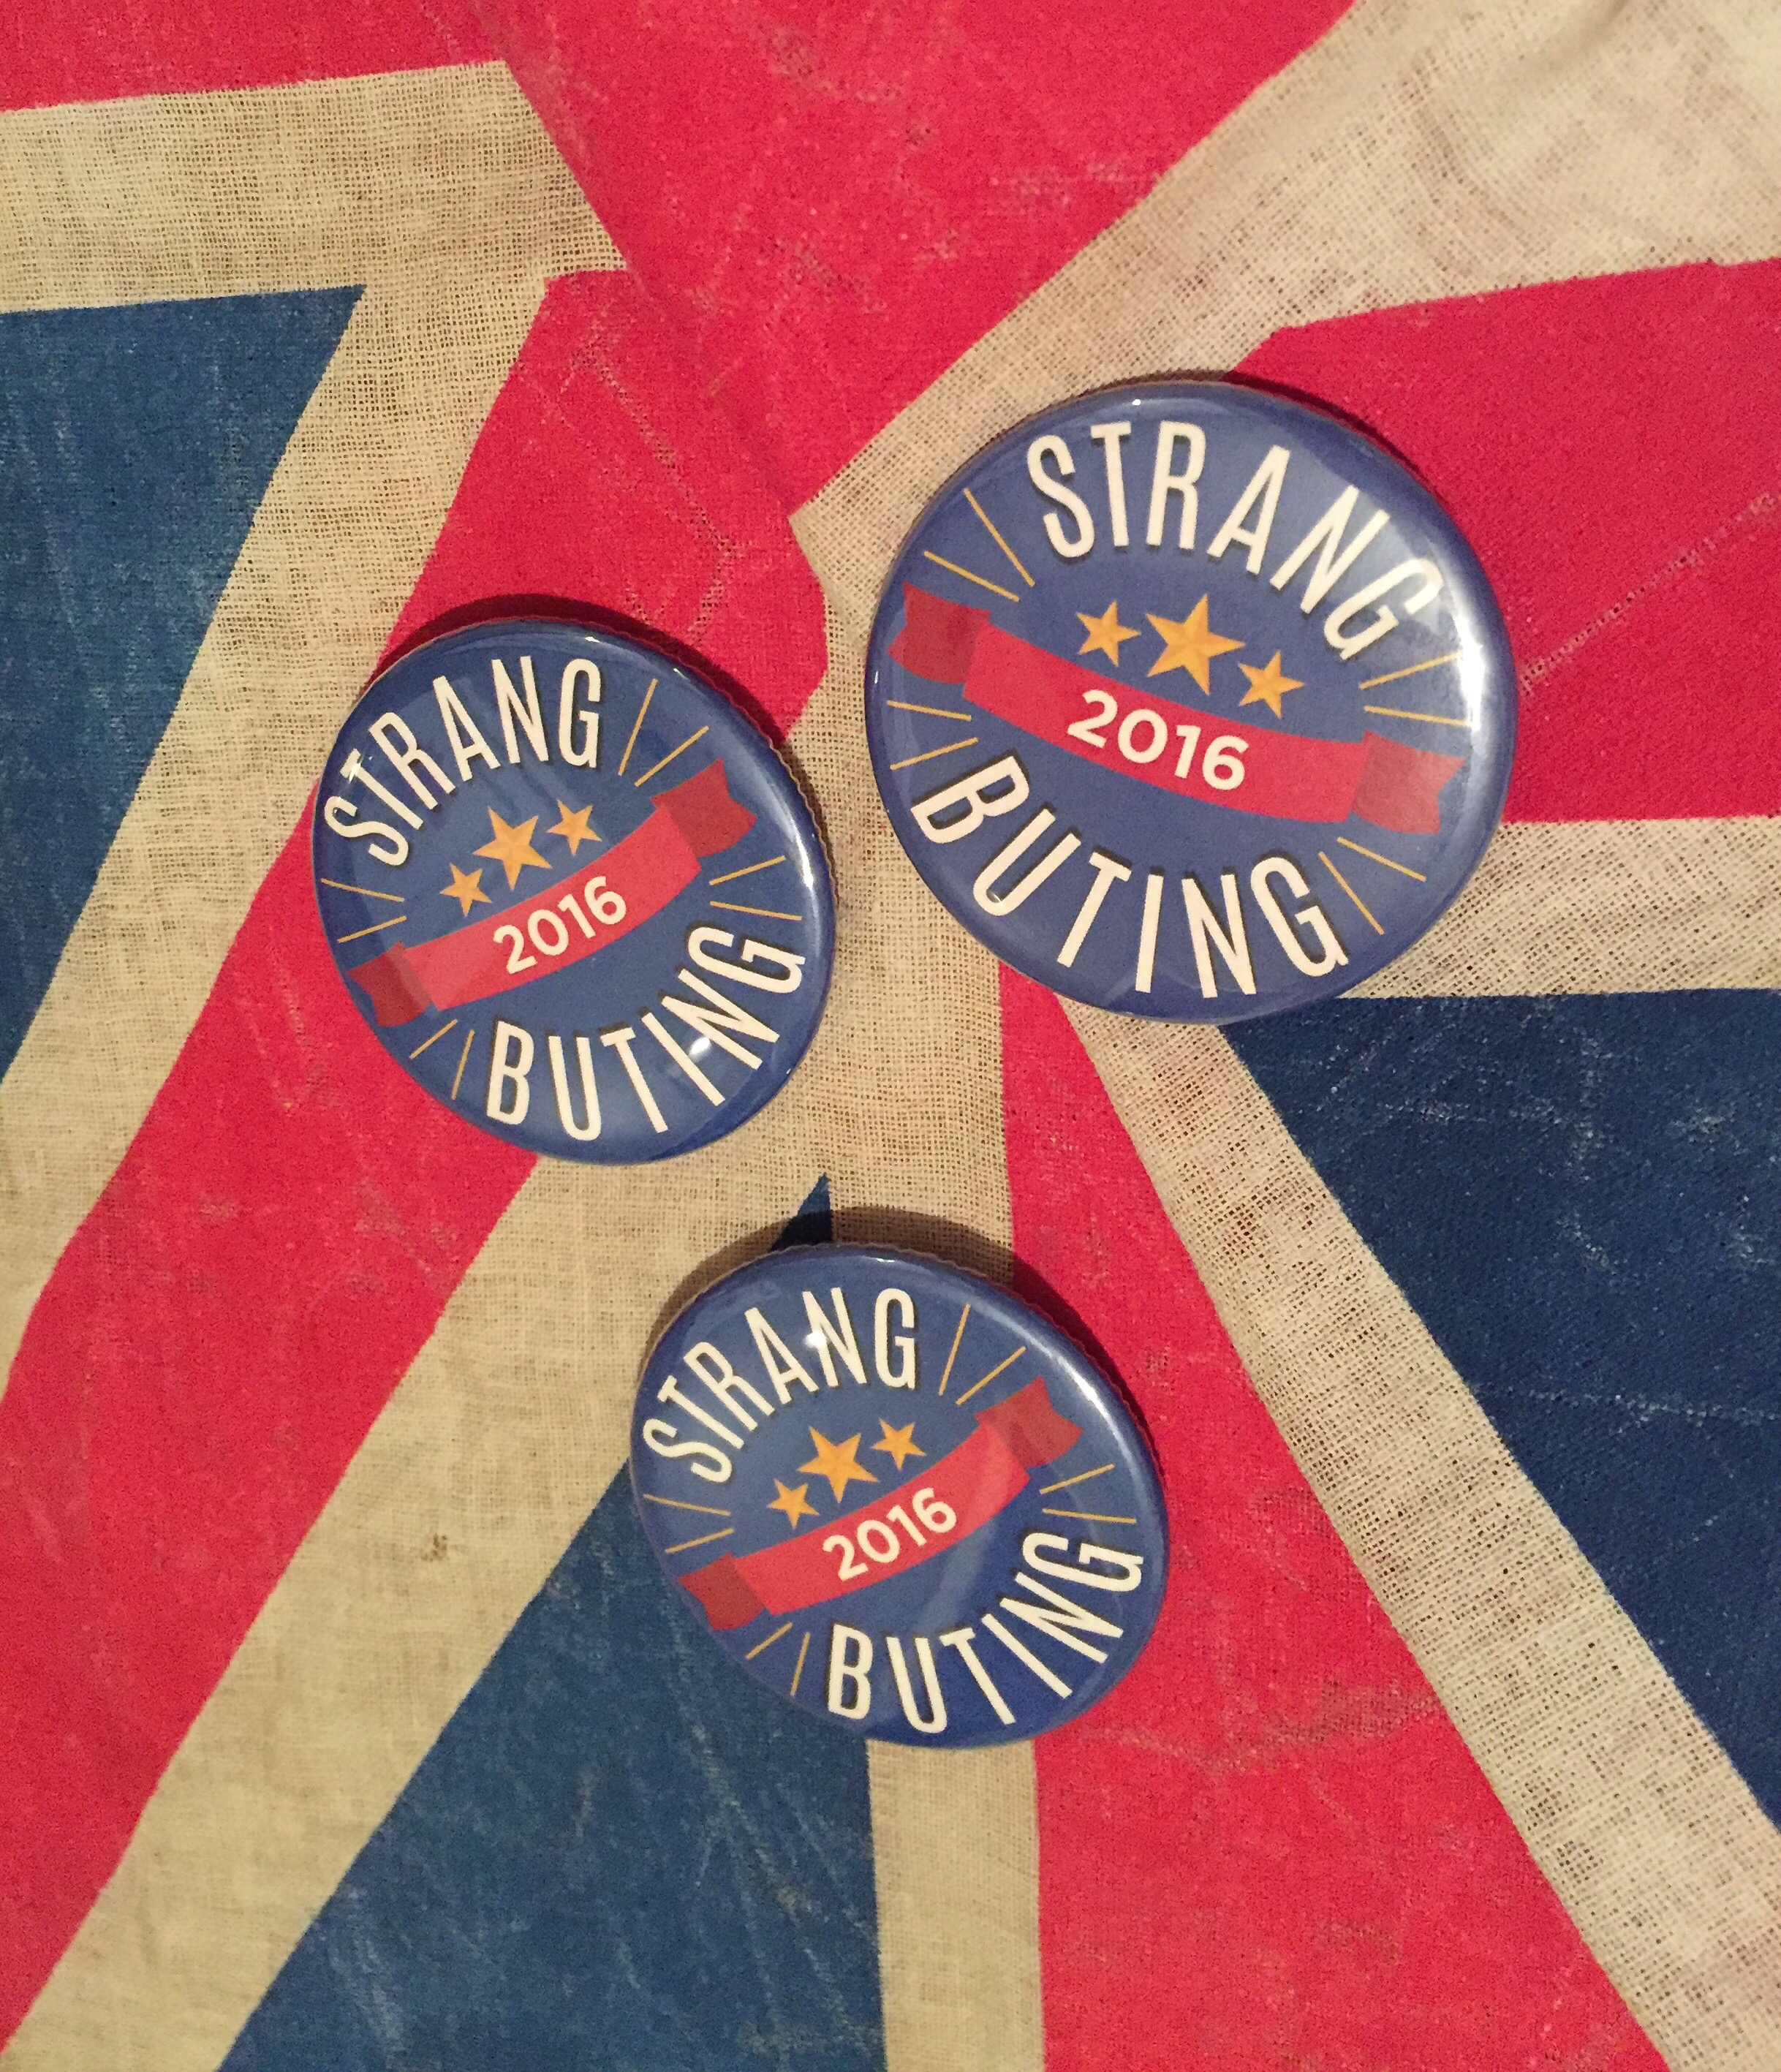 Dean Strang  Jerry Buting Election Buttons